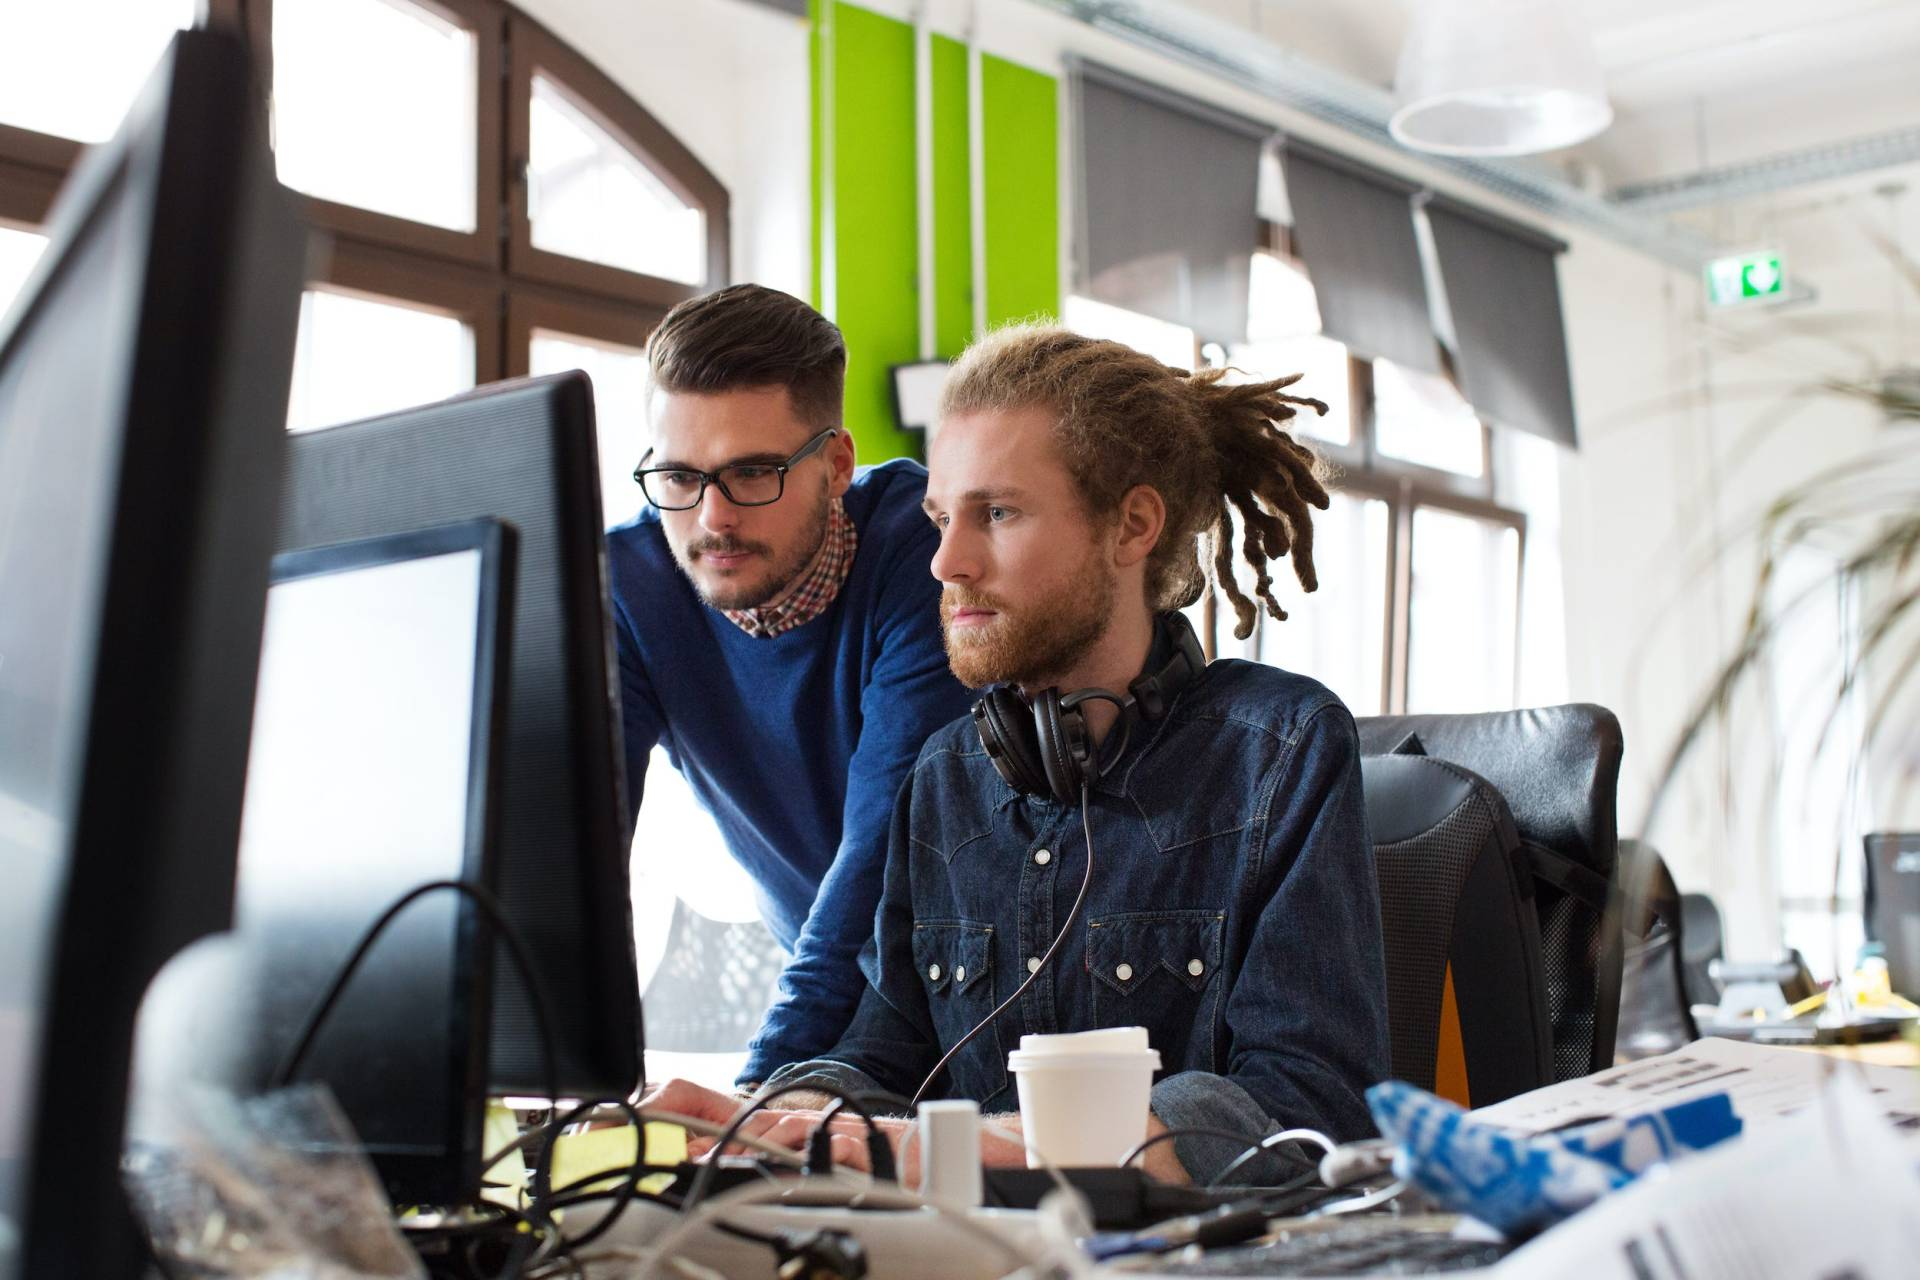 IT professionals working together on desktop PC